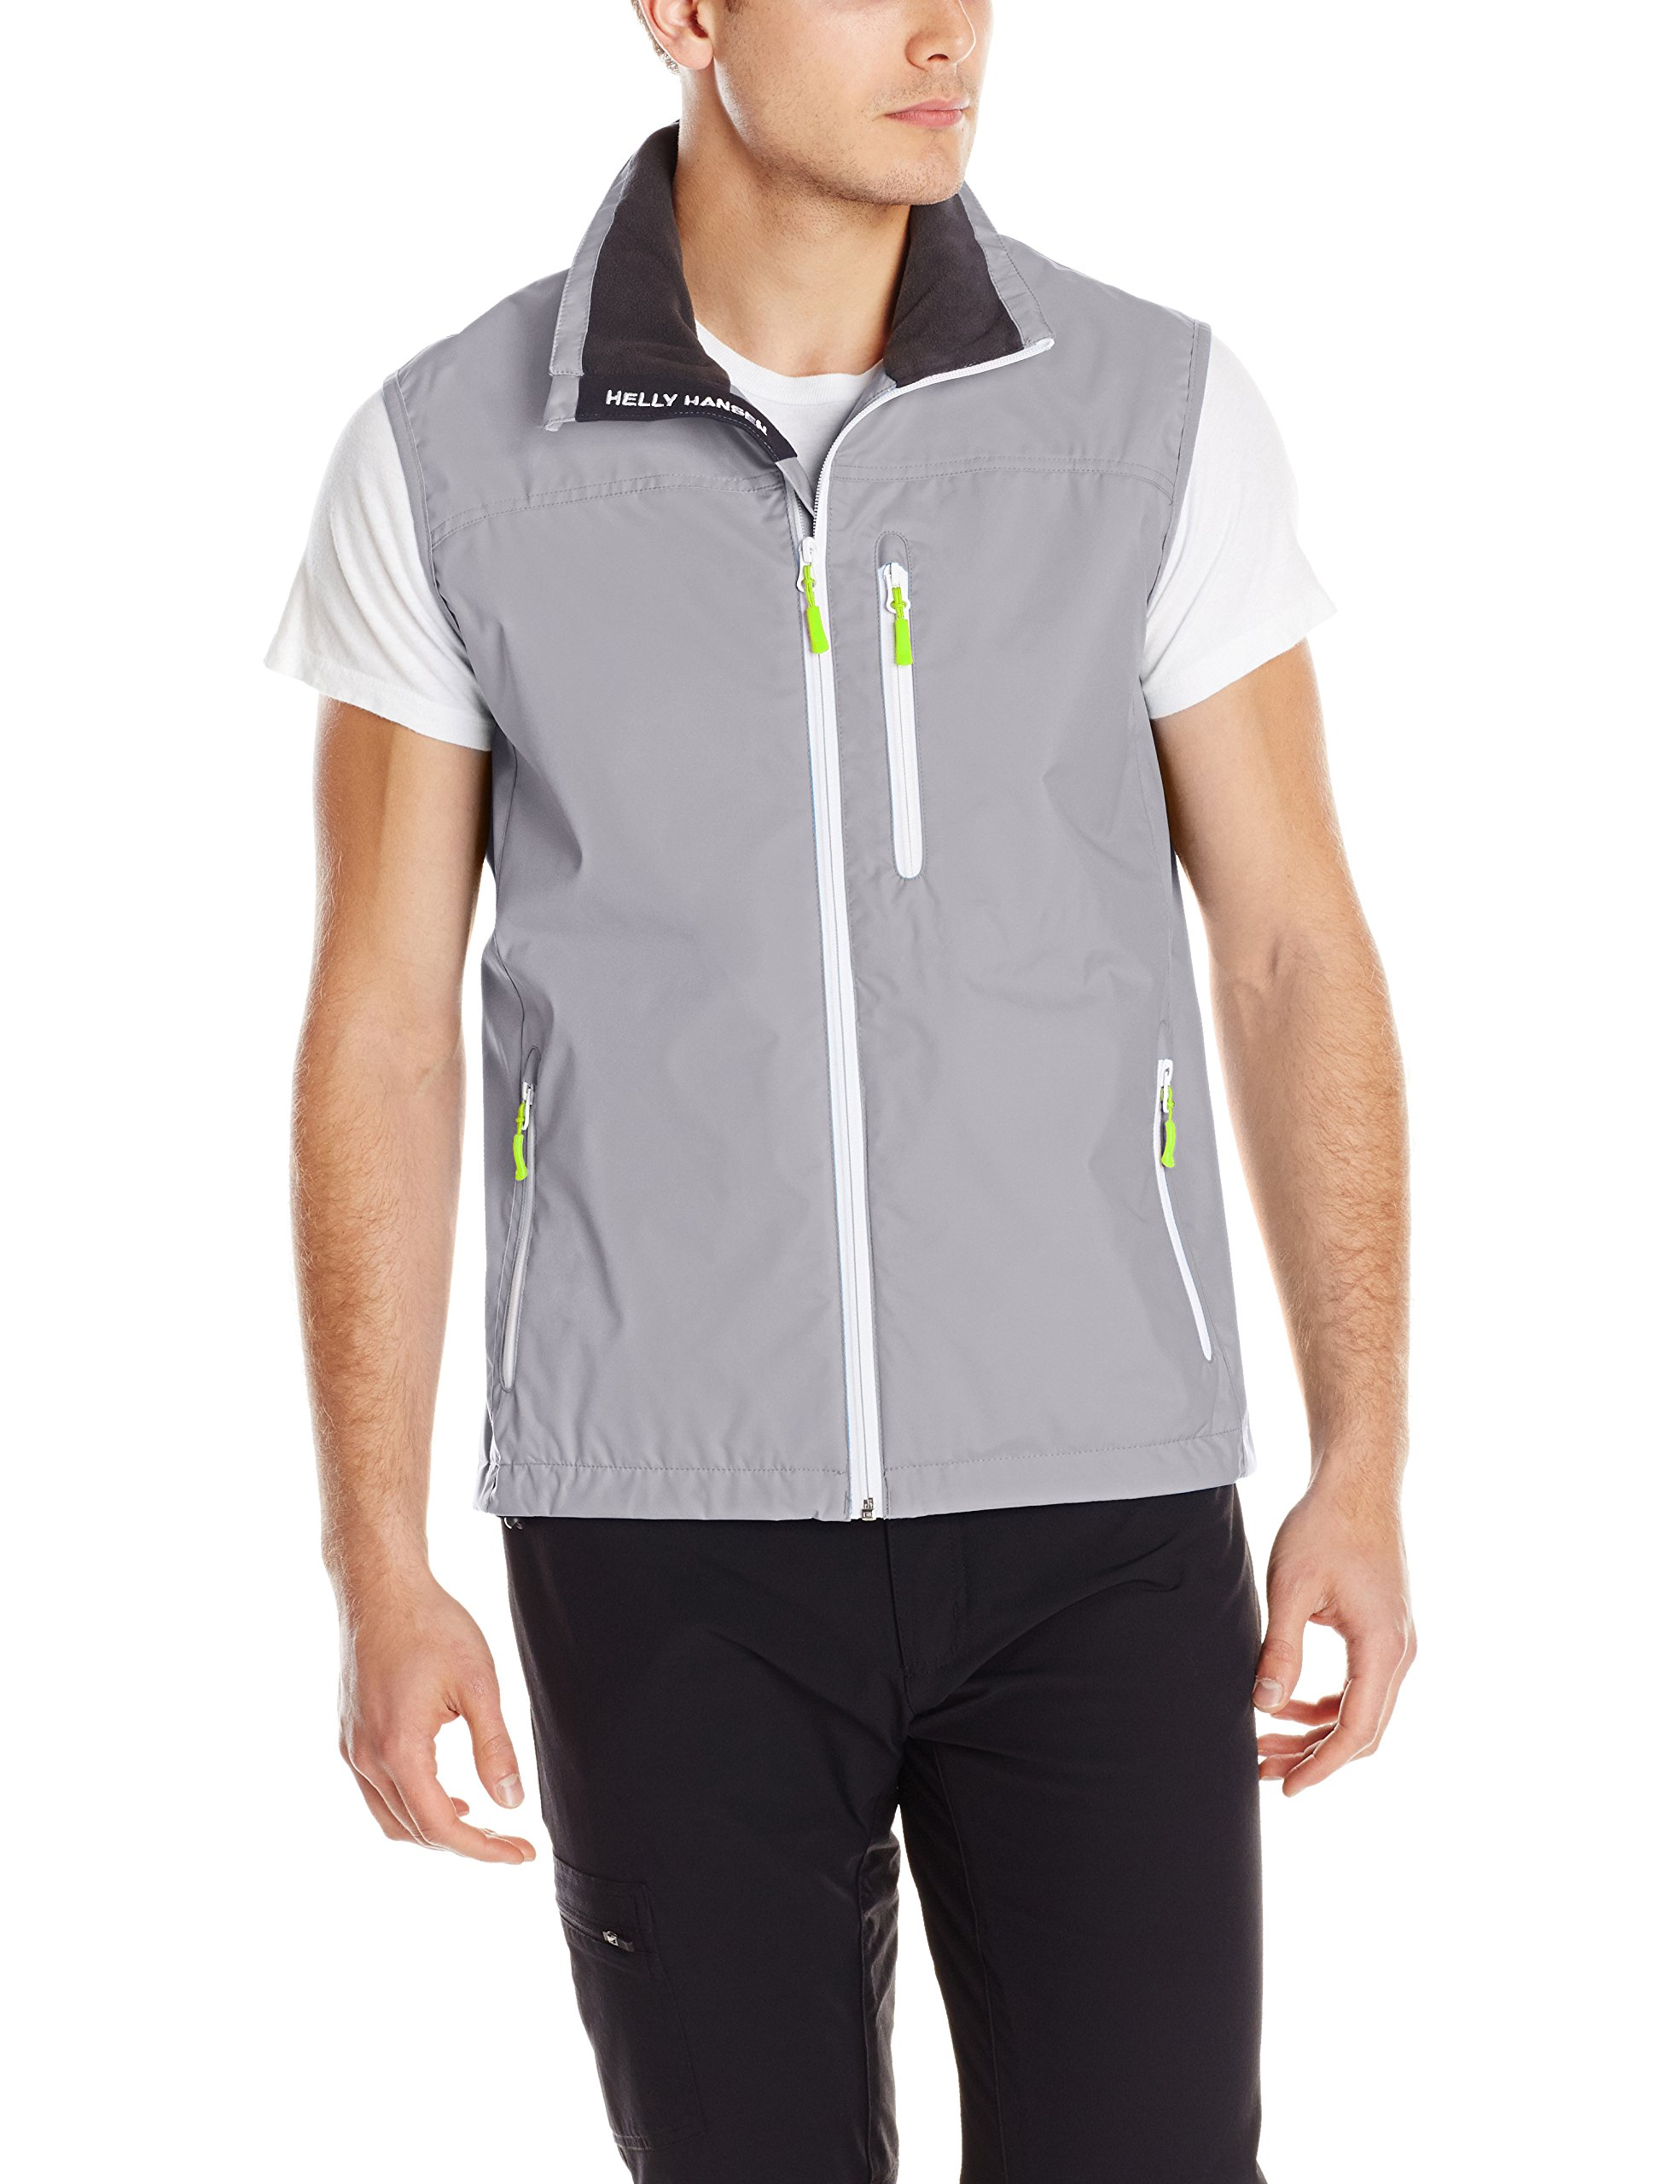 Helly Hansen Men's Crew Vest Waterproof, Windproof, & Breathable Sailing Vest, 820 Silver Grey, Small by Helly Hansen